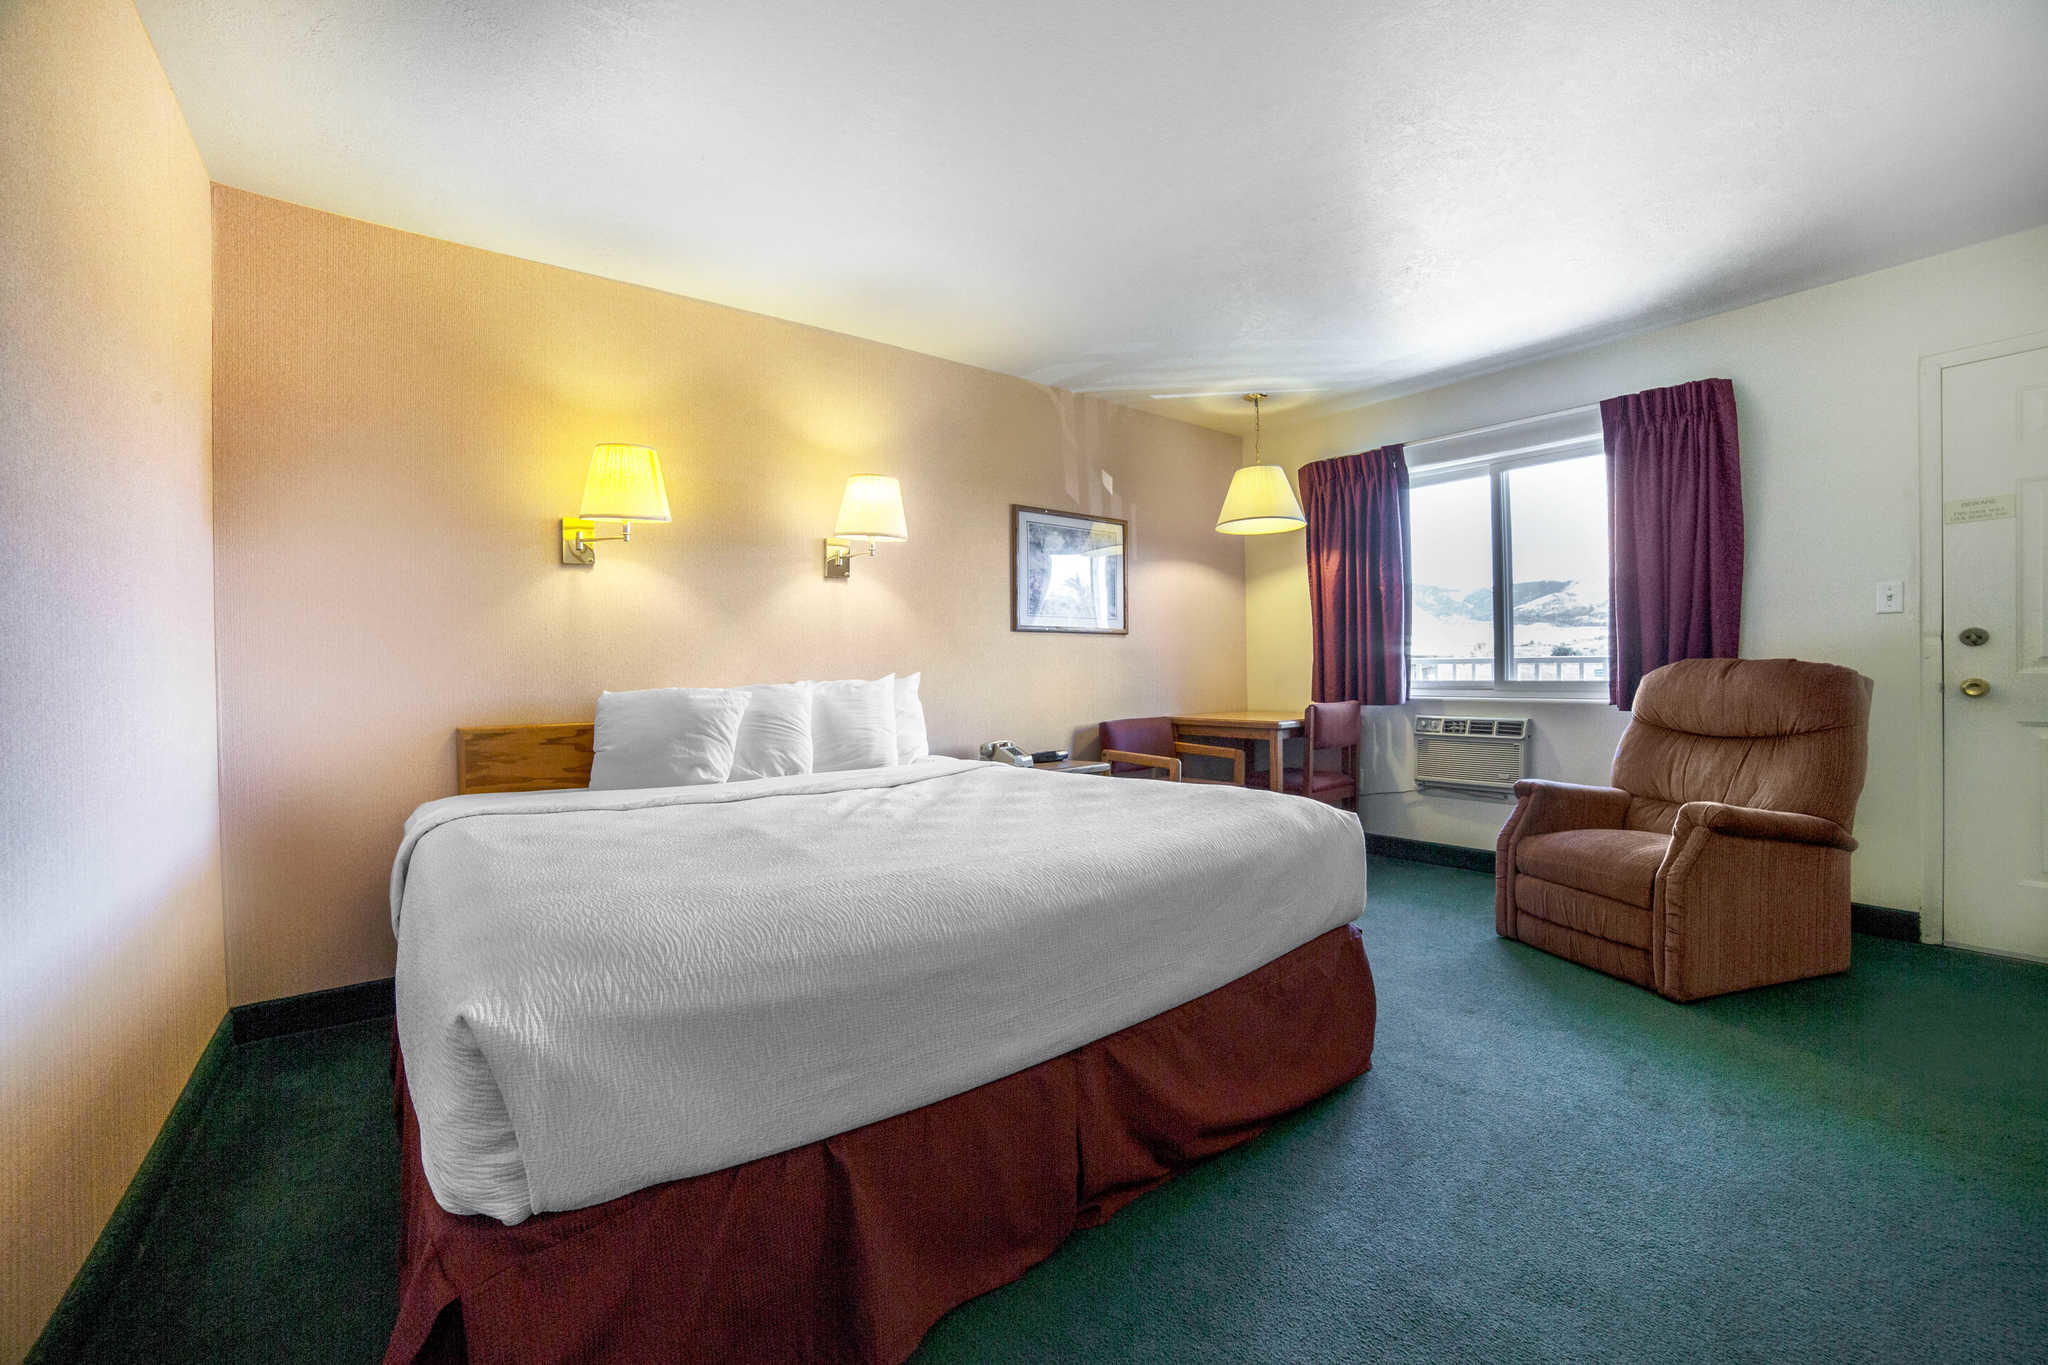 Rodeway Inn Coupons Near Me In Whitehall 8coupons